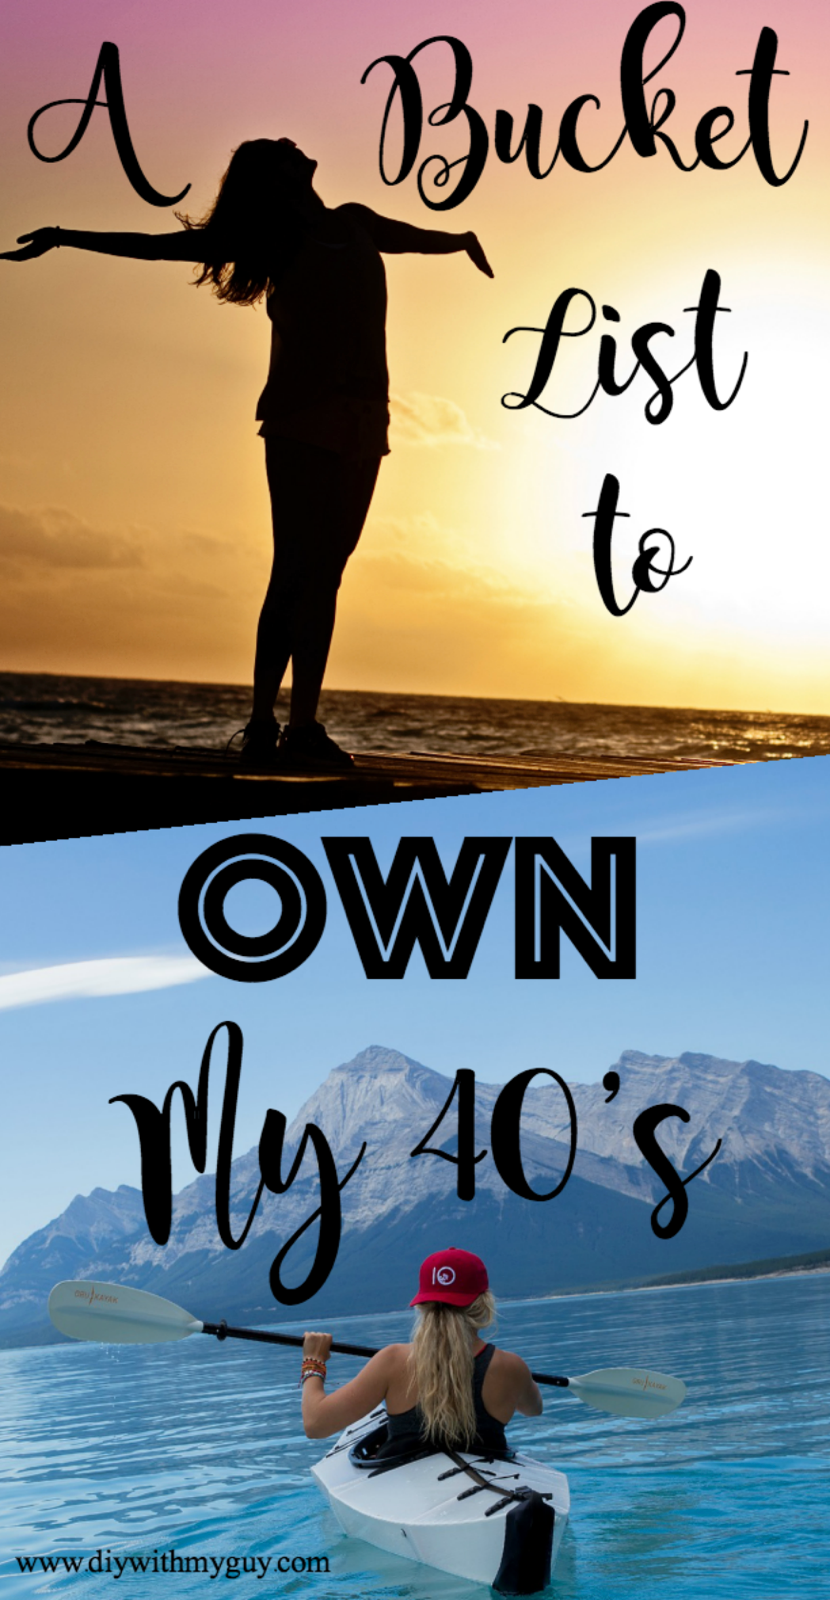 A Bucket List For Women To Own Your 40 S Diy With My Guy